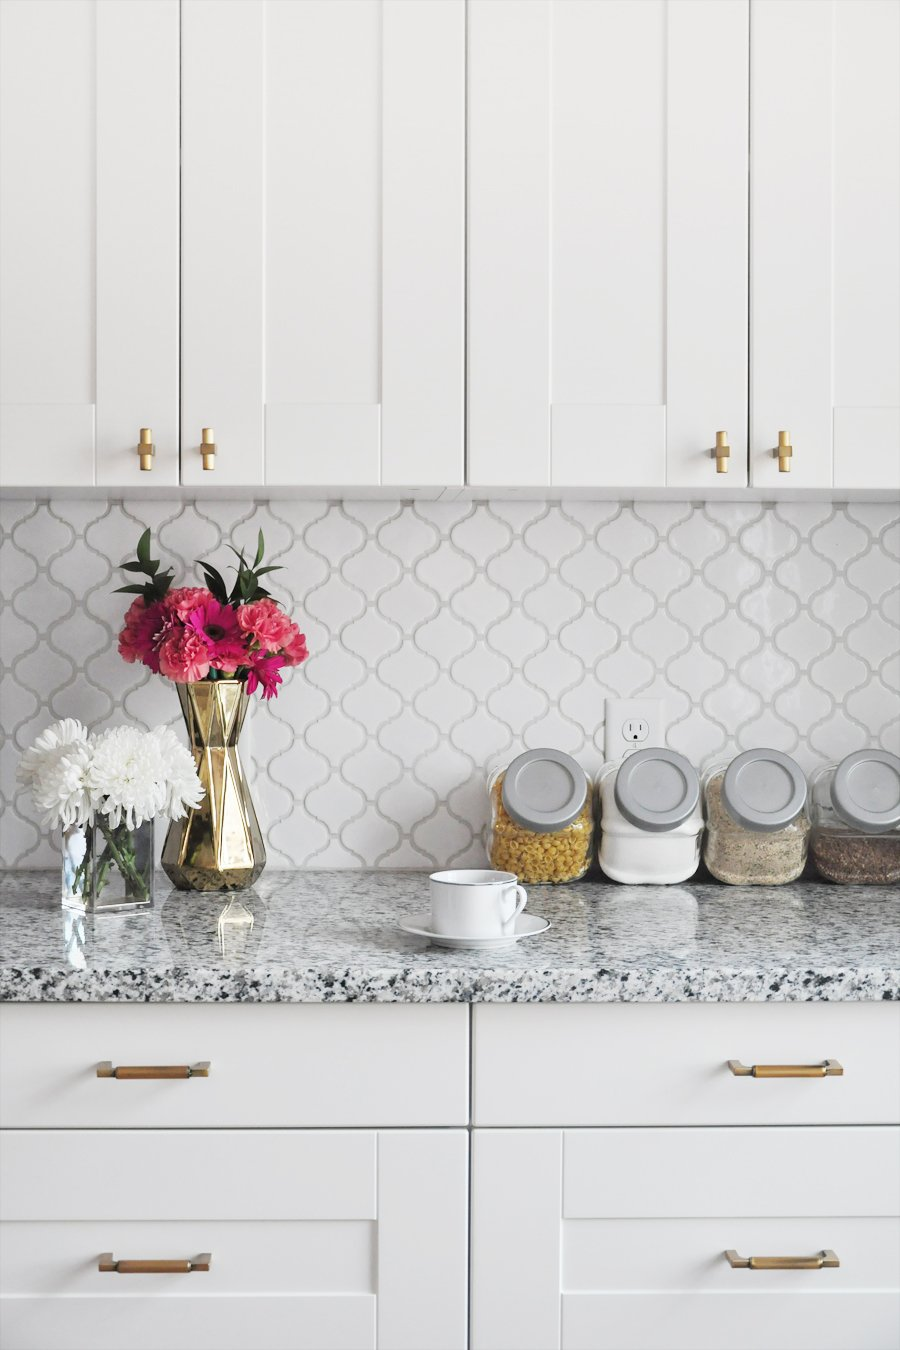 I Ve Partnered With Wayfair To Share Yet Another Tiling Guide This Time M Teaching You How Tile The Kitchen Backsplash